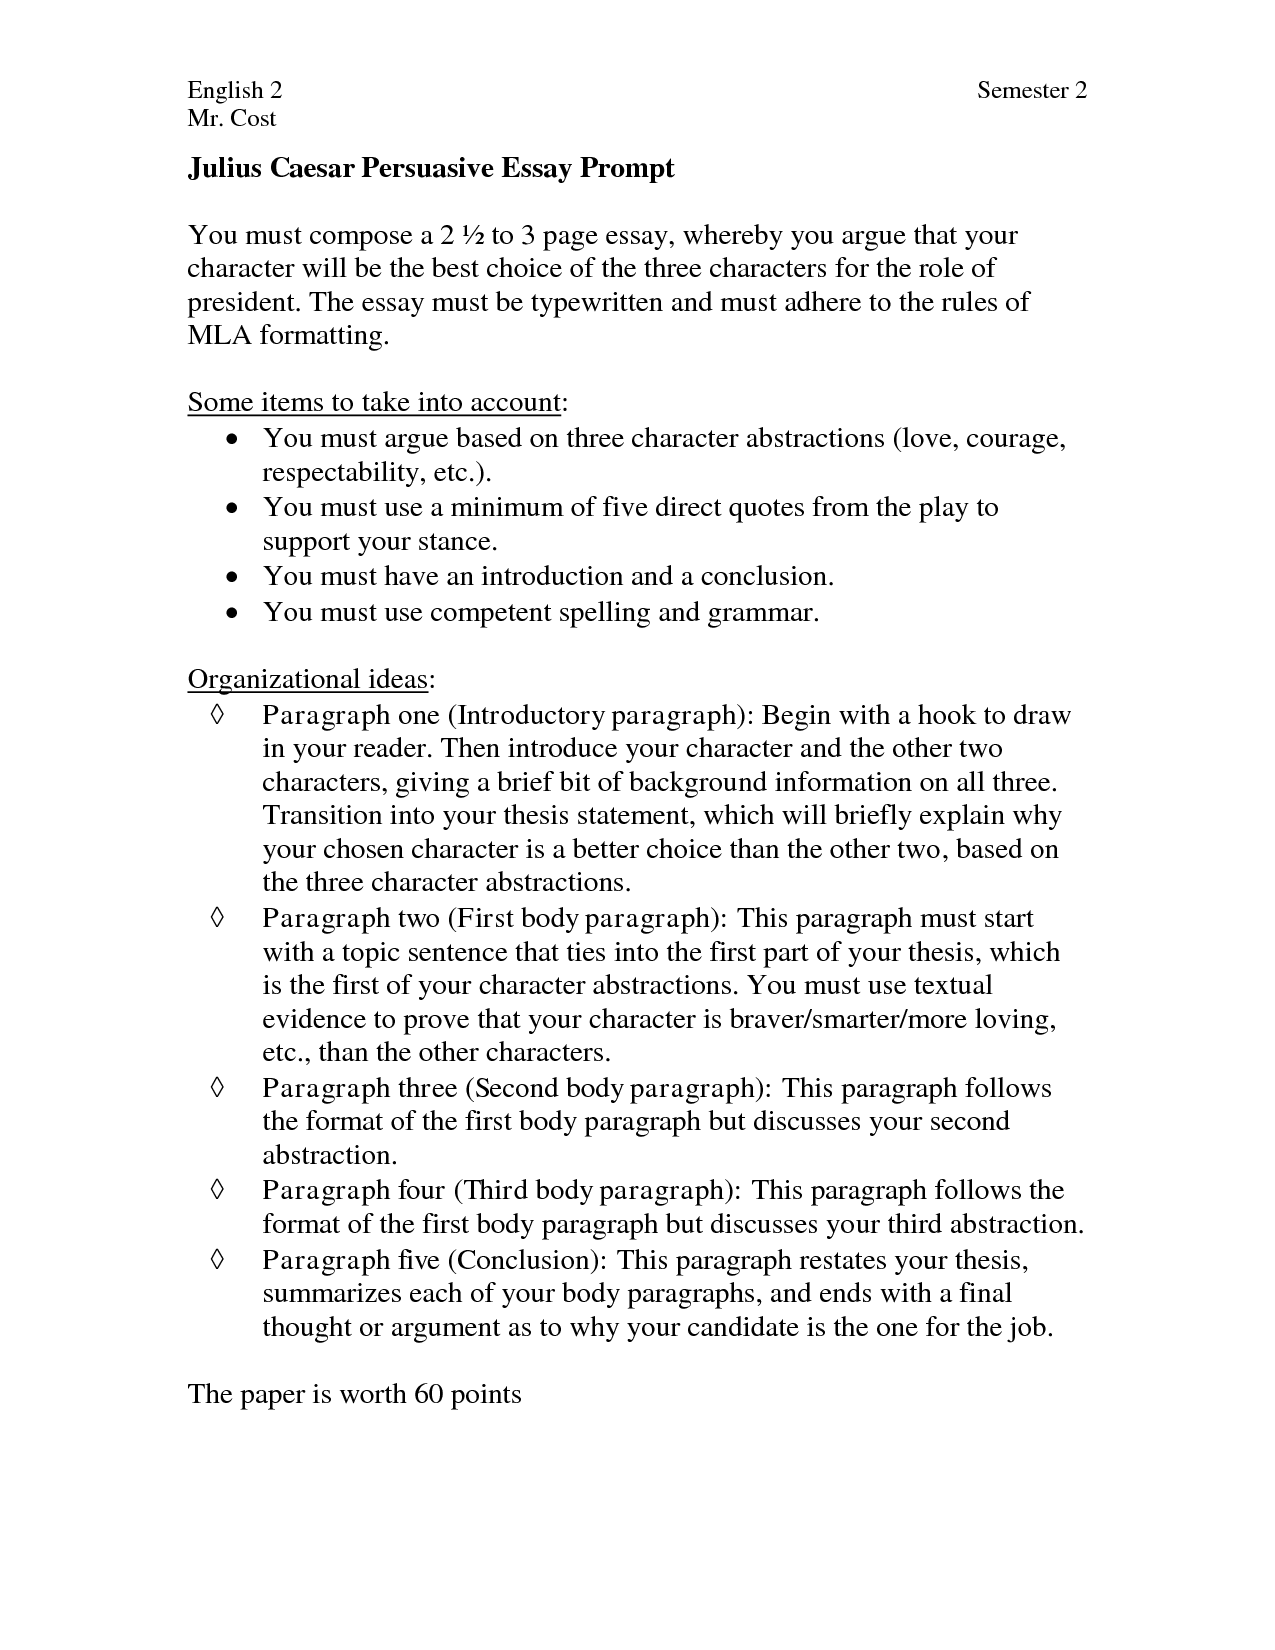 persuasive essay prompts 2018-4-22  a persuasive essay guide: topics, outline, prompts, rubric and examples are included  persuasive essay rubric - tracy unified school district.